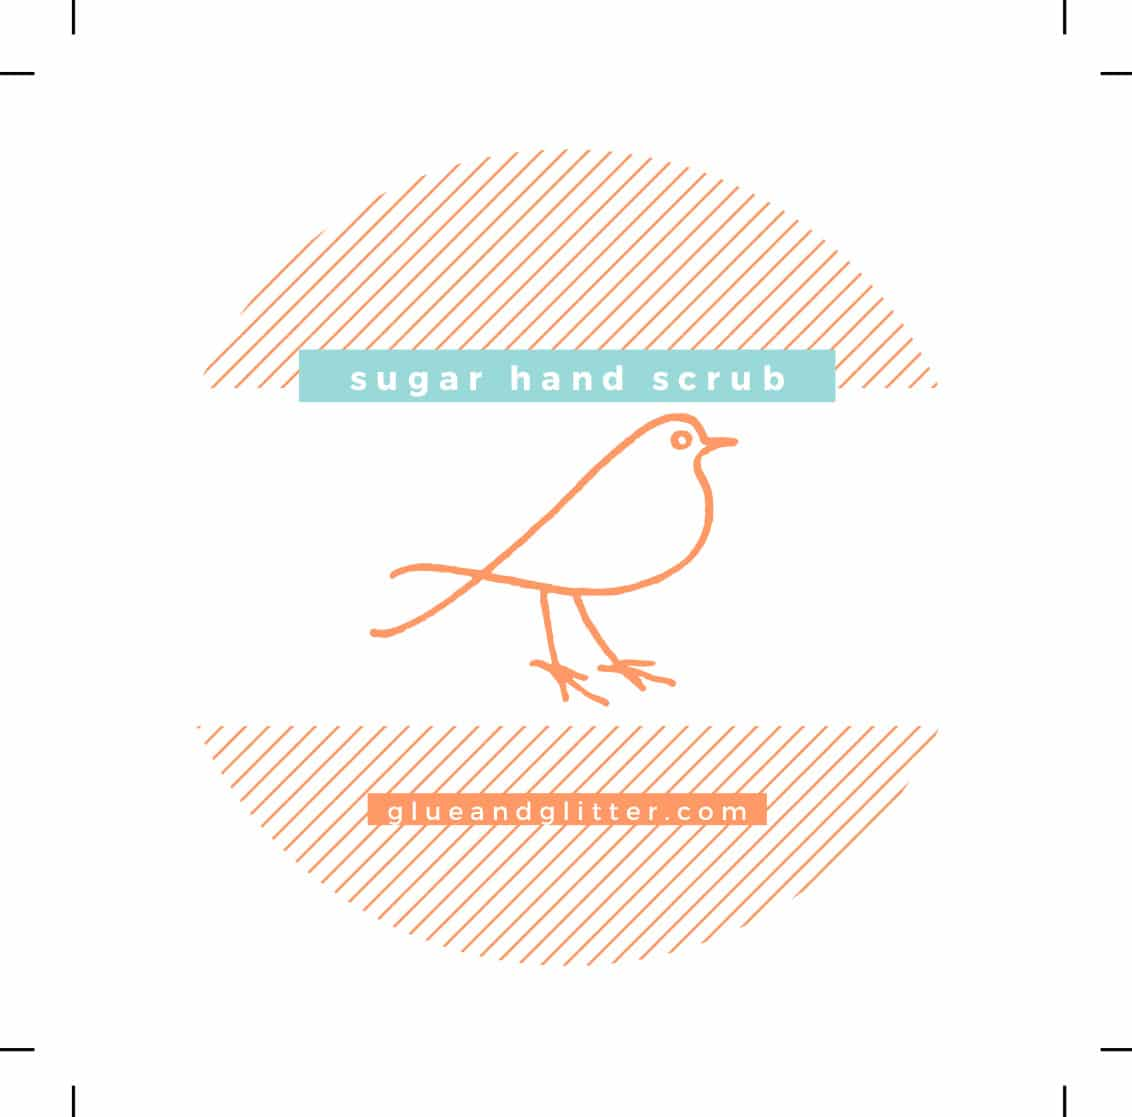 """label with bleed lines. Label is an orange, striped circle with text boxes that read """"sugar hand scrub"""" and """"glueandglitter.com"""""""